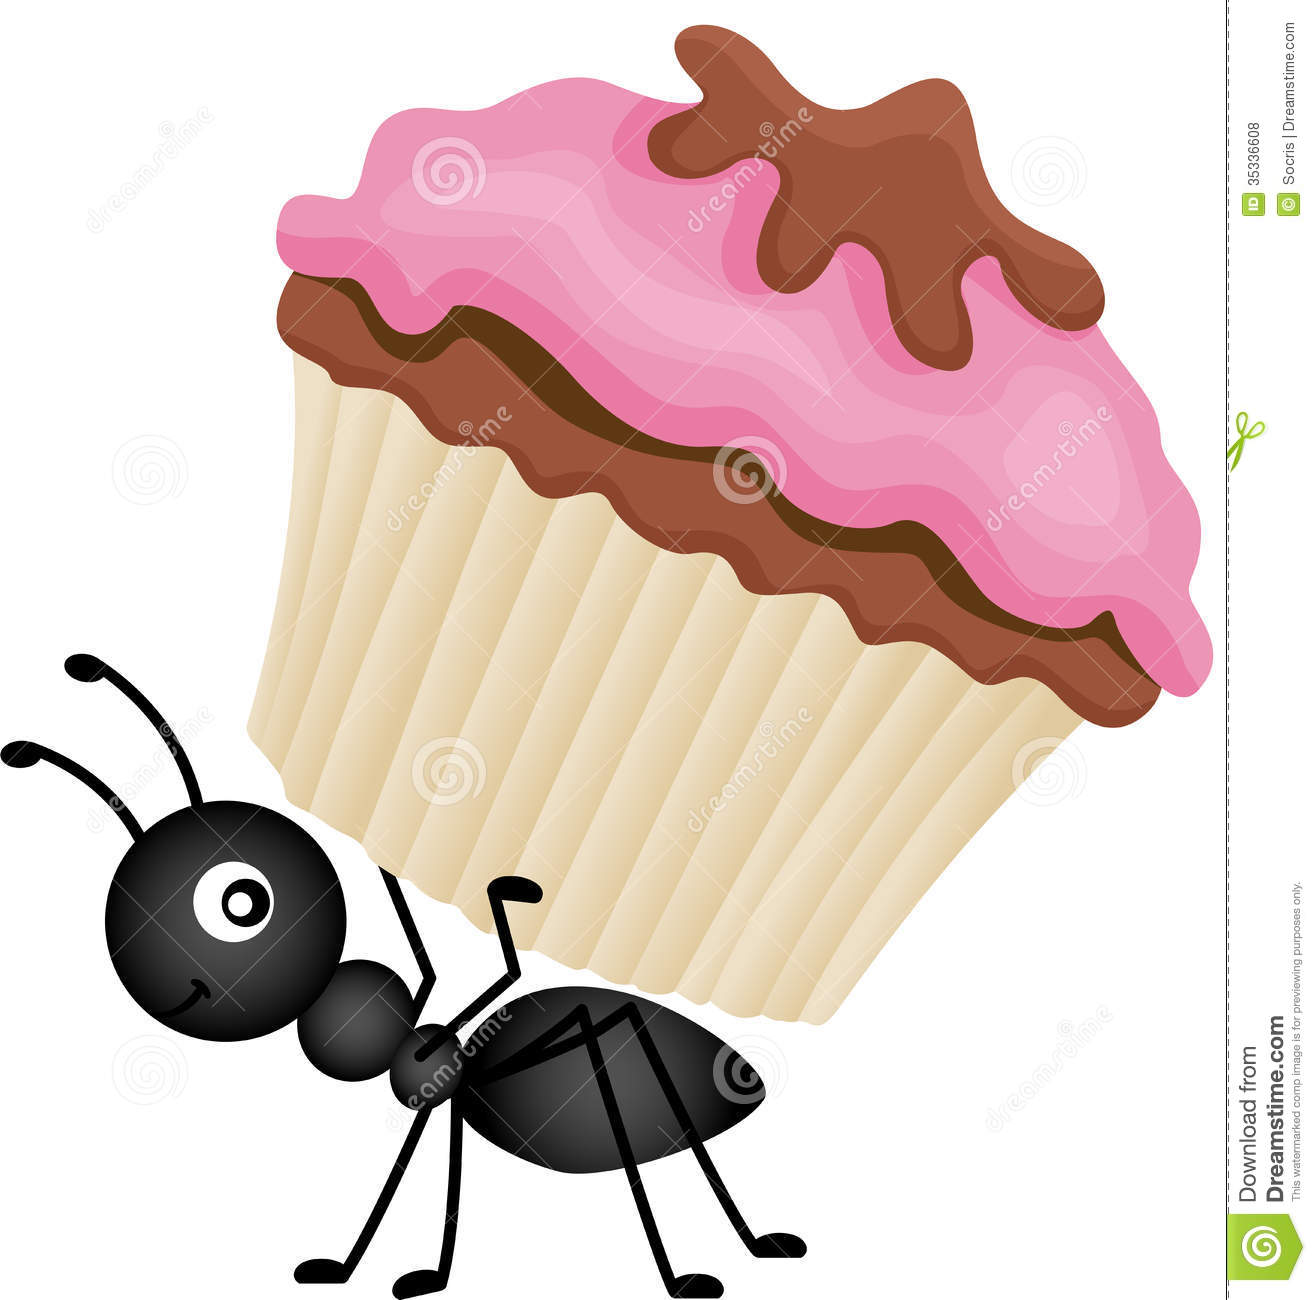 Ants clipart food. Carrying cake